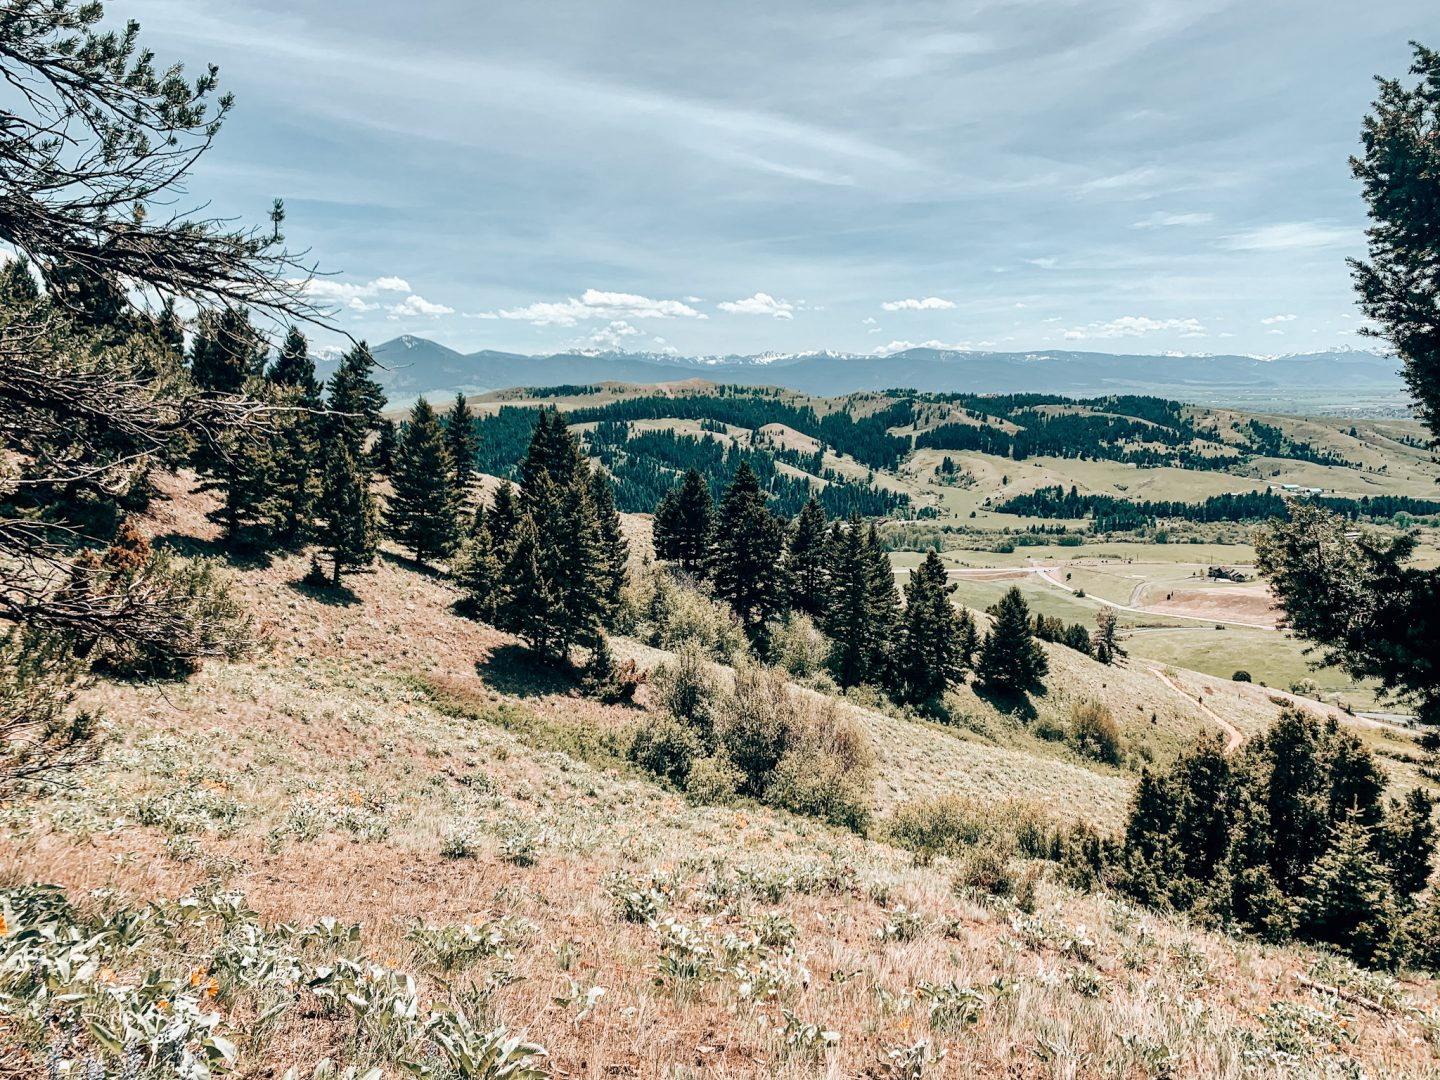 Views of the valley in Bozeman, Montana